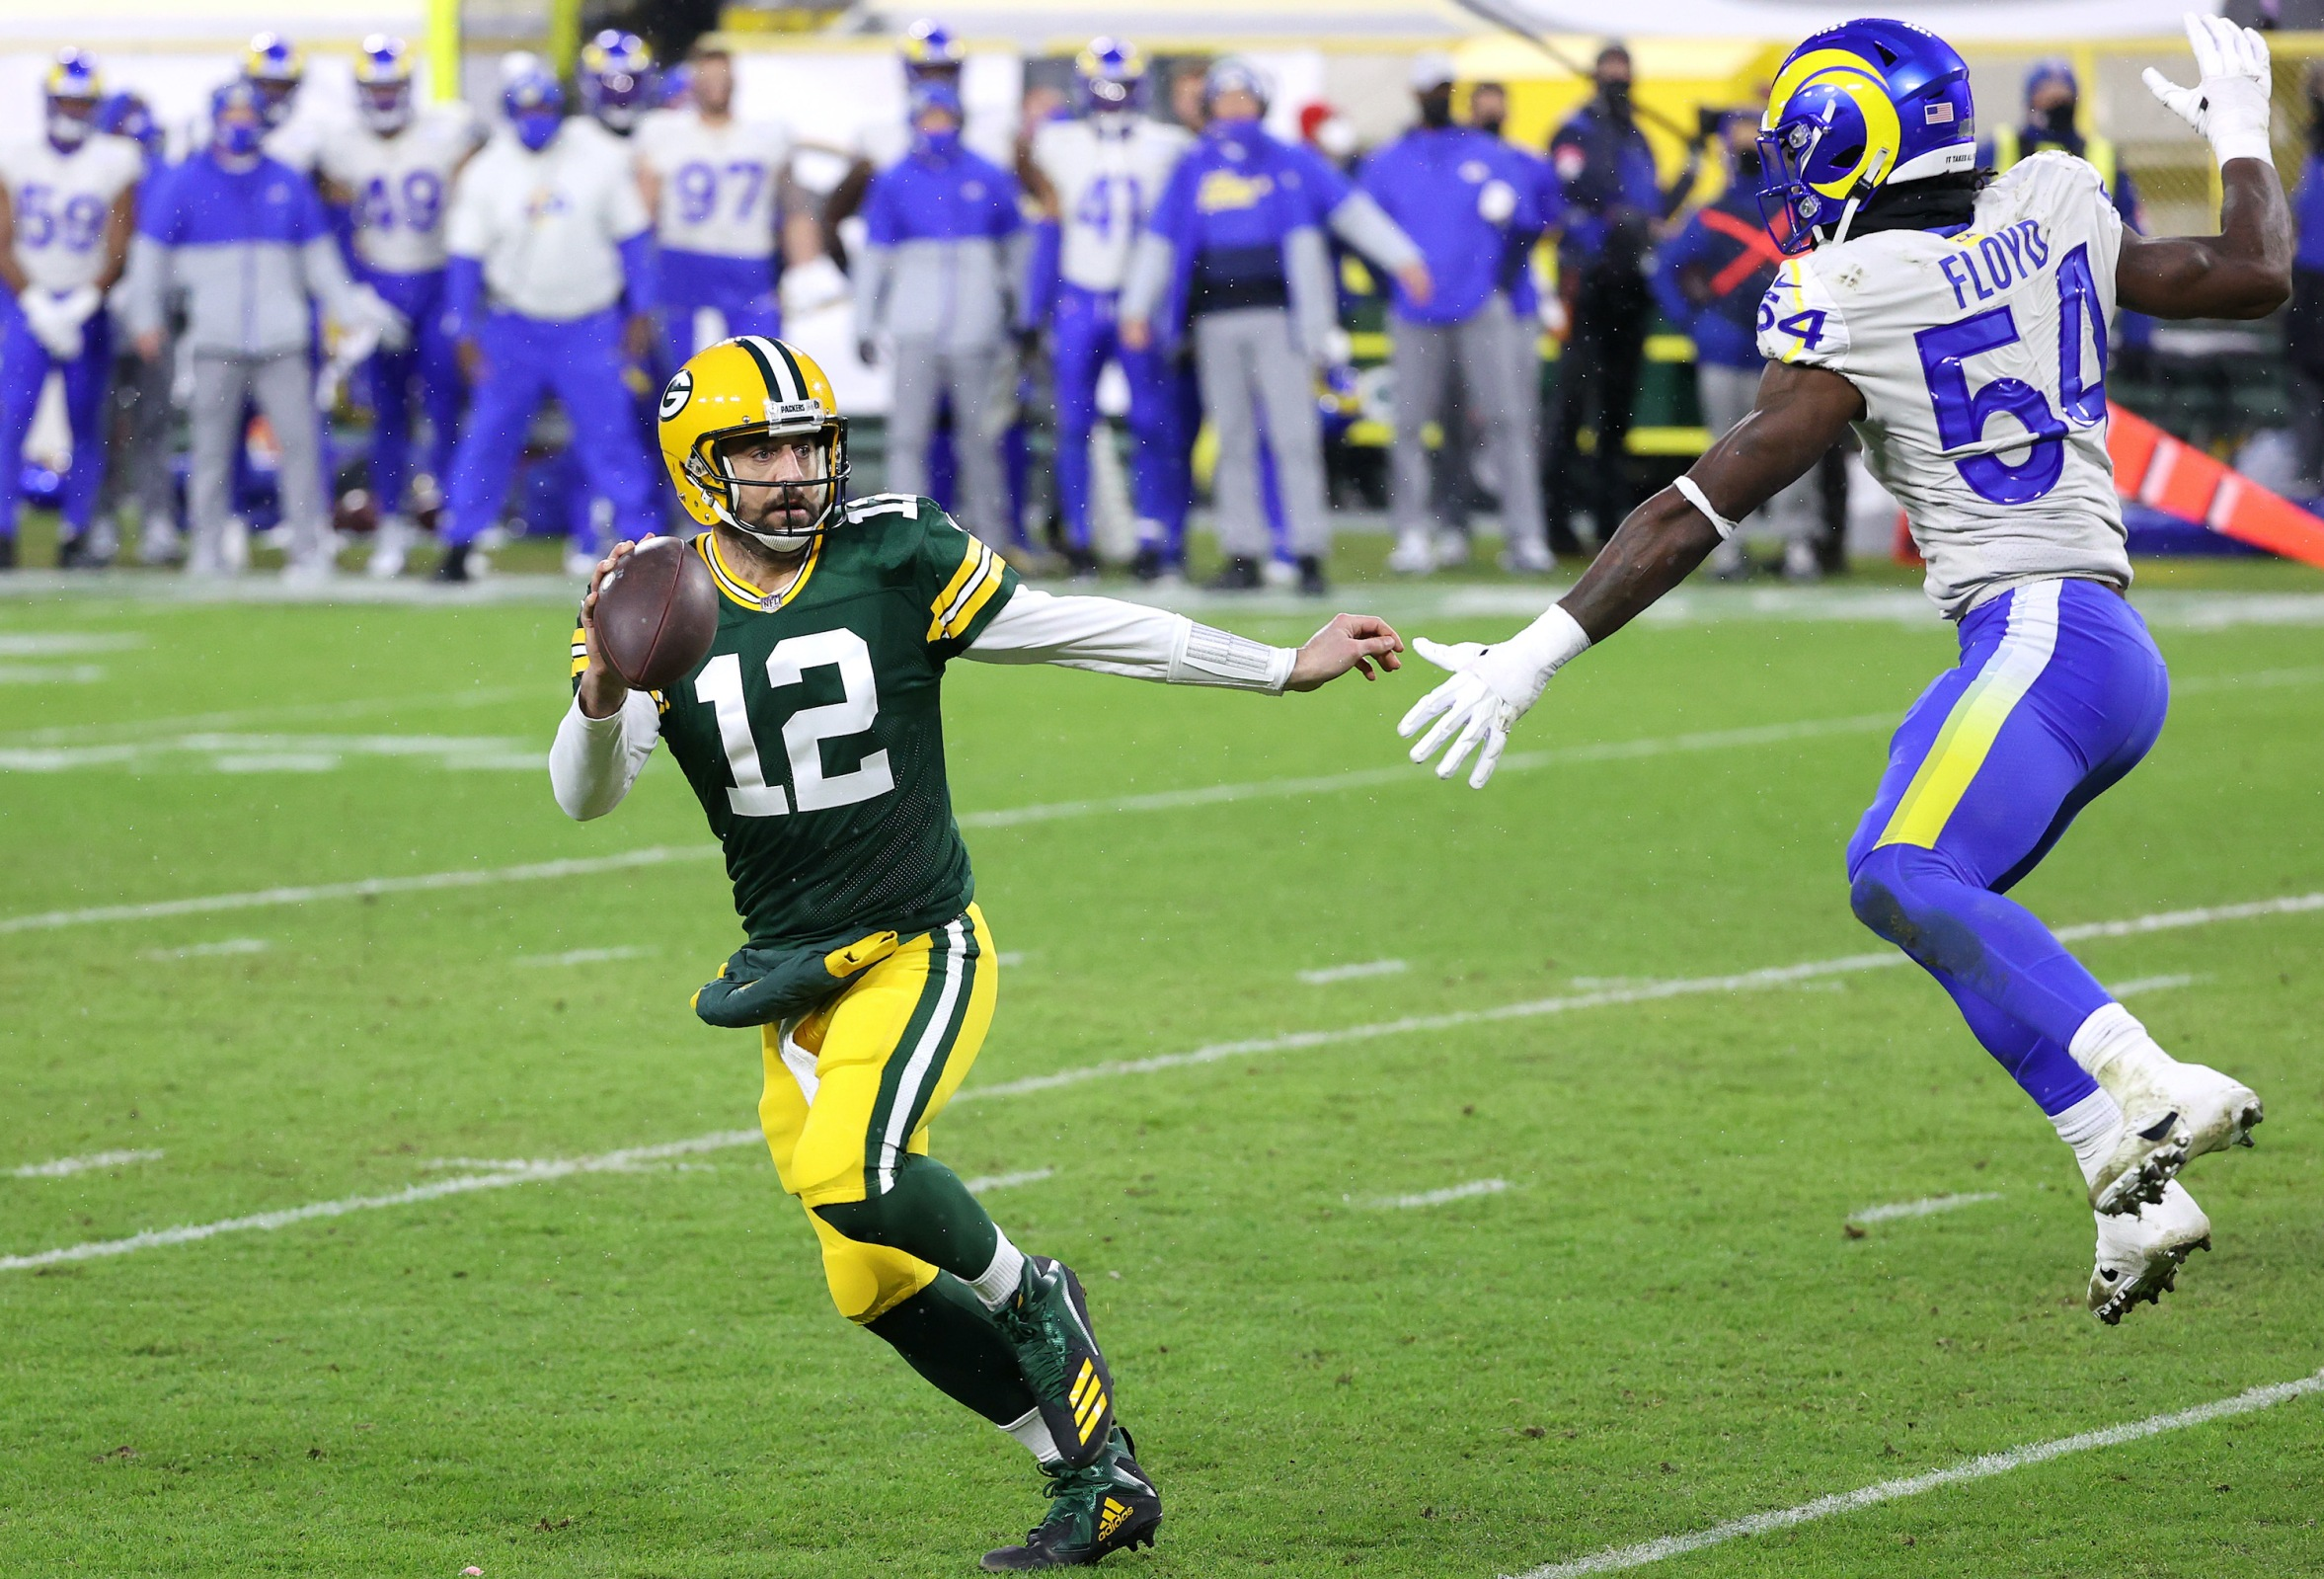 Aaron Rodgers #12 of the Green Bay Packers runs against Leonard Floyd #54 of the Los Angeles Rams for a 1-yard touchdown in the second quarter during the NFC Divisional Playoff game at Lambeau Field on January 16, 2021 in Green Bay, Wisconsin.